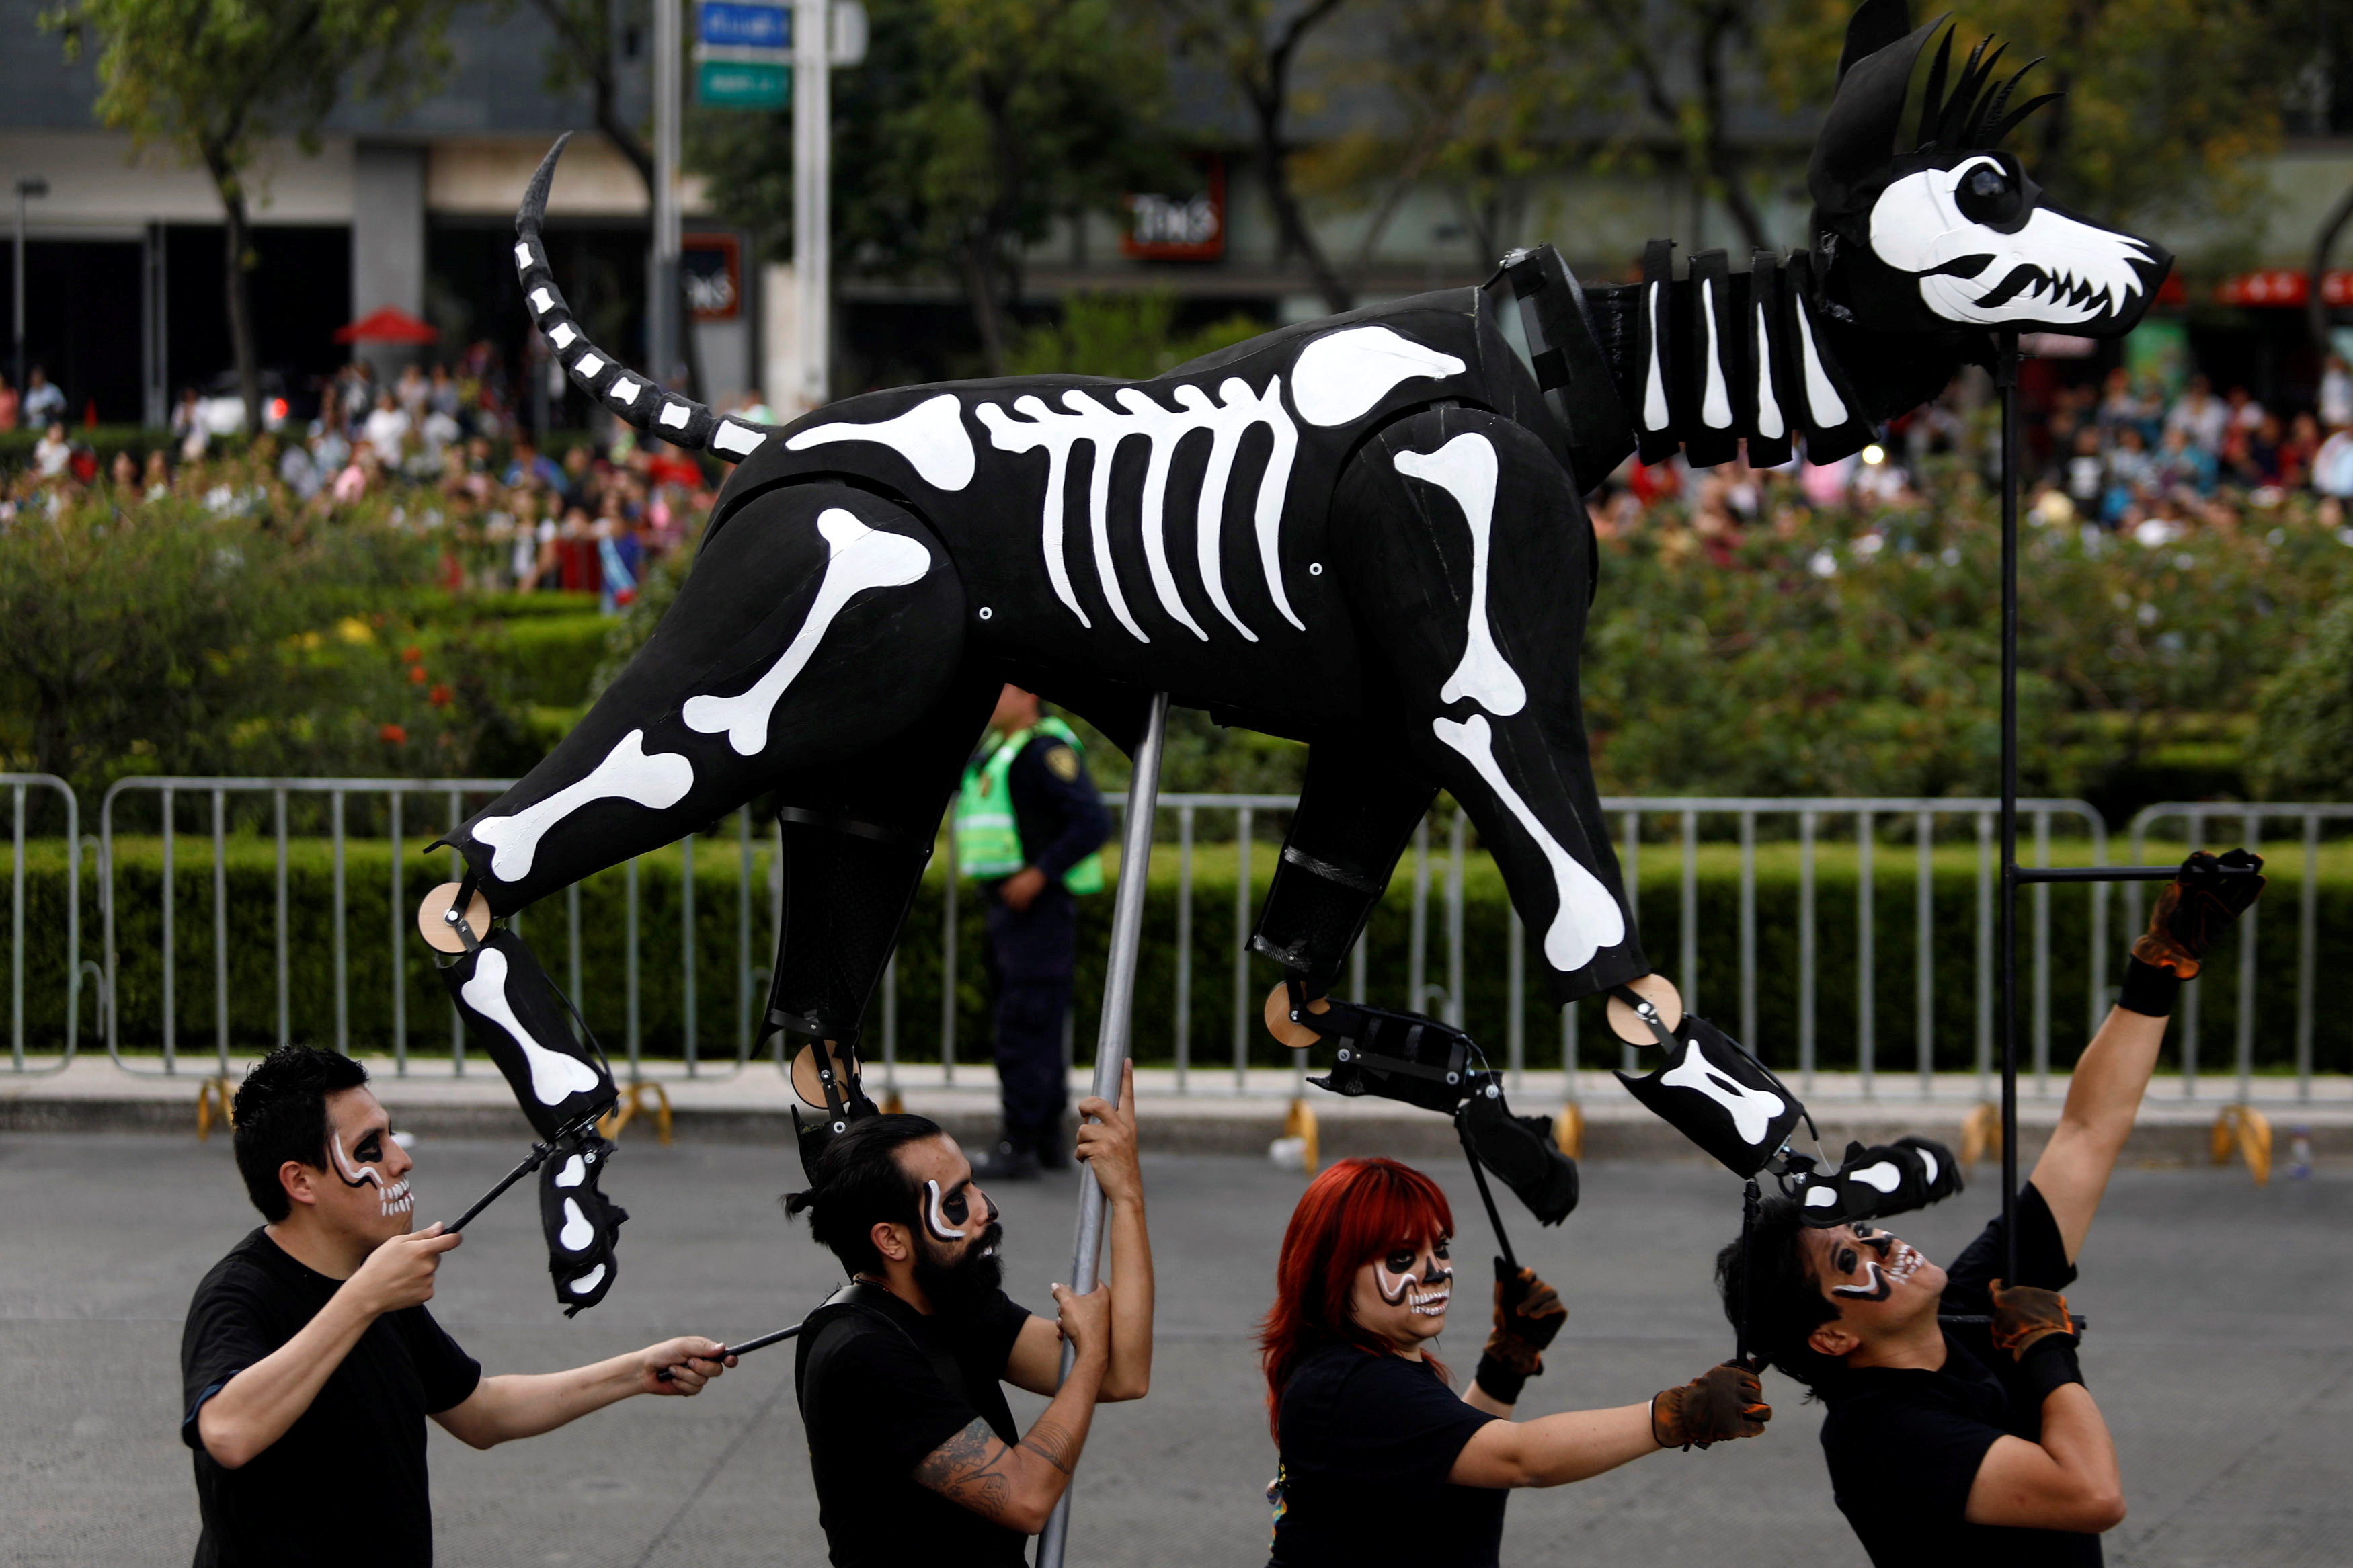 A puppet depicting the skeleton of a dog participates in a procession to commemorate Day of the Dead in Mexico City, Mexico, October 28, 2017. REUTERS/Edgard Garrido